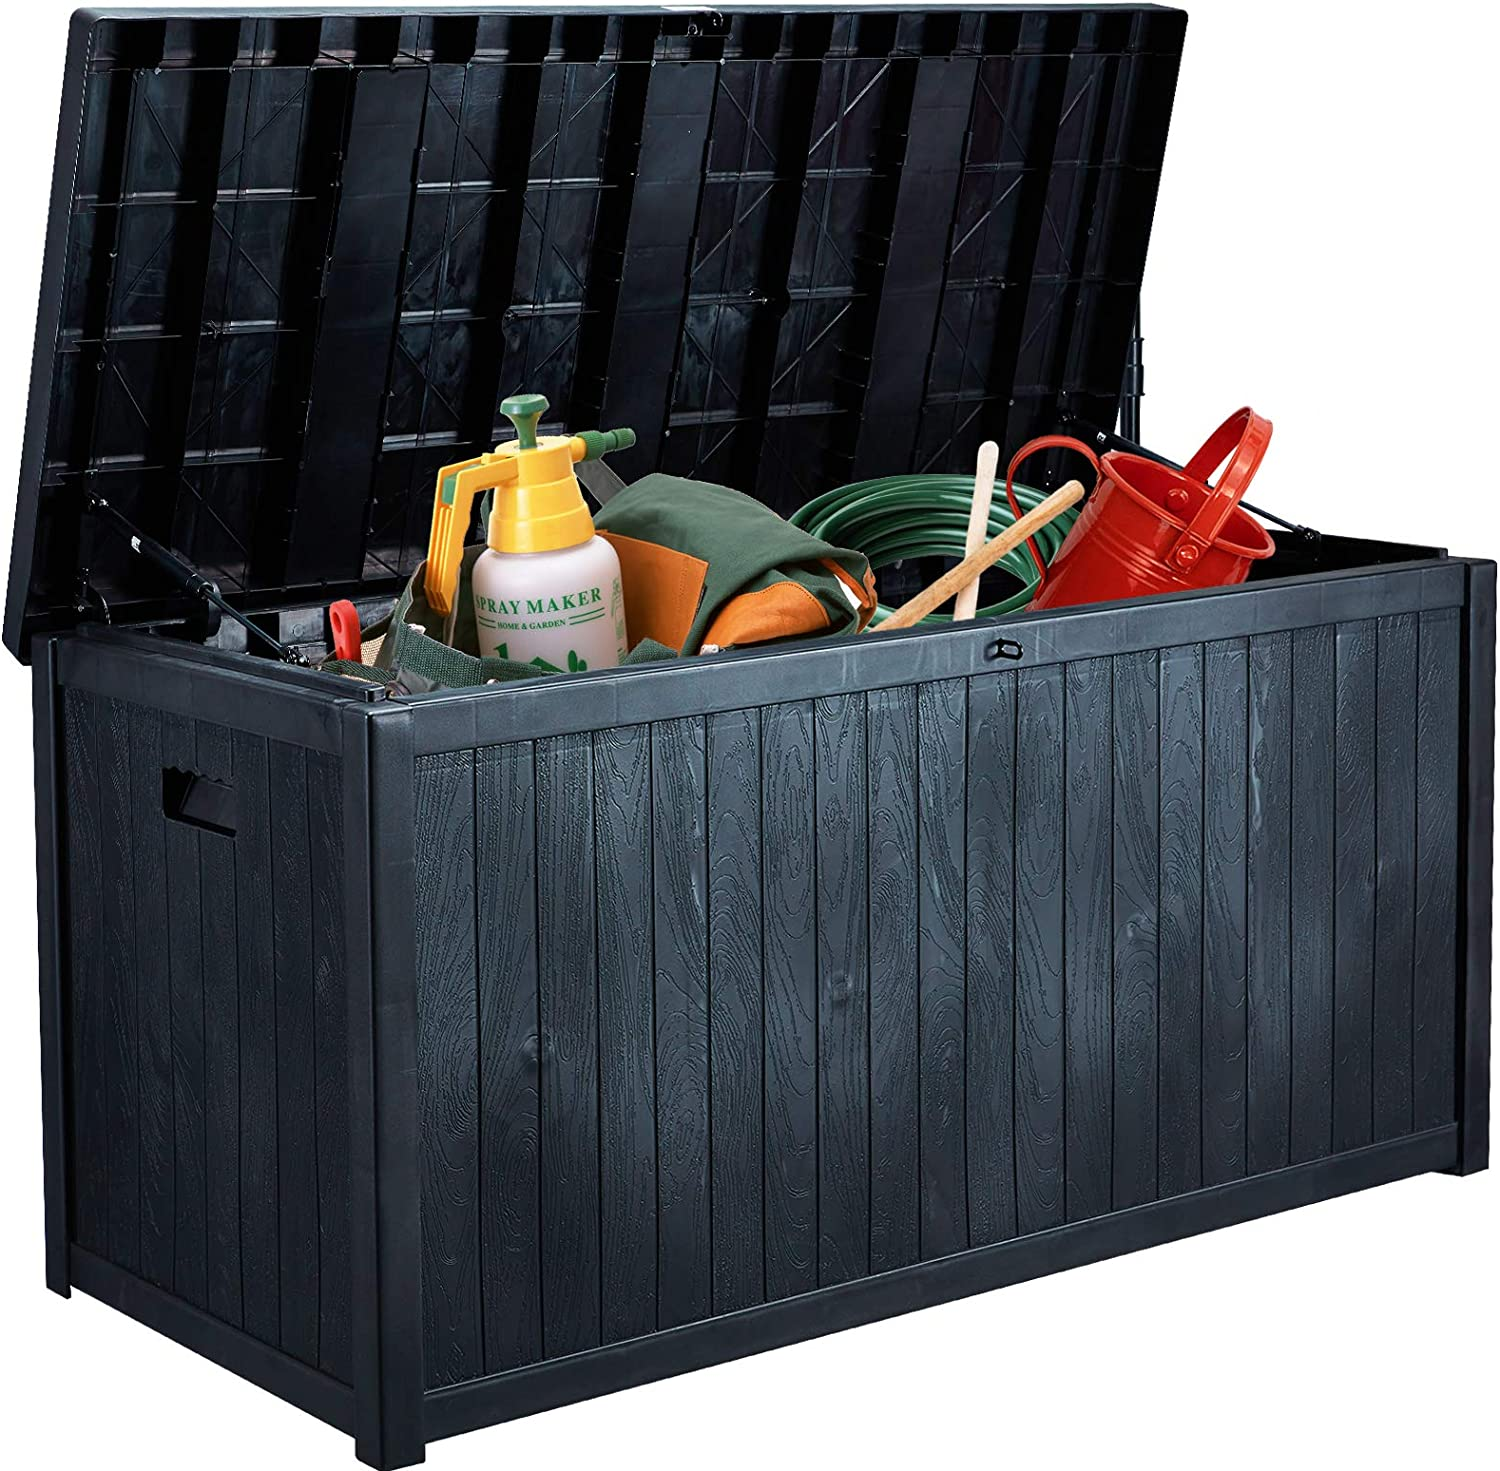 AVAWING Large Deck Box, Outdoor Storage Container with 120 Gallon, Patio Garden Furniture for Garden Tools, Pillows, Pool Toys, Dark Grey